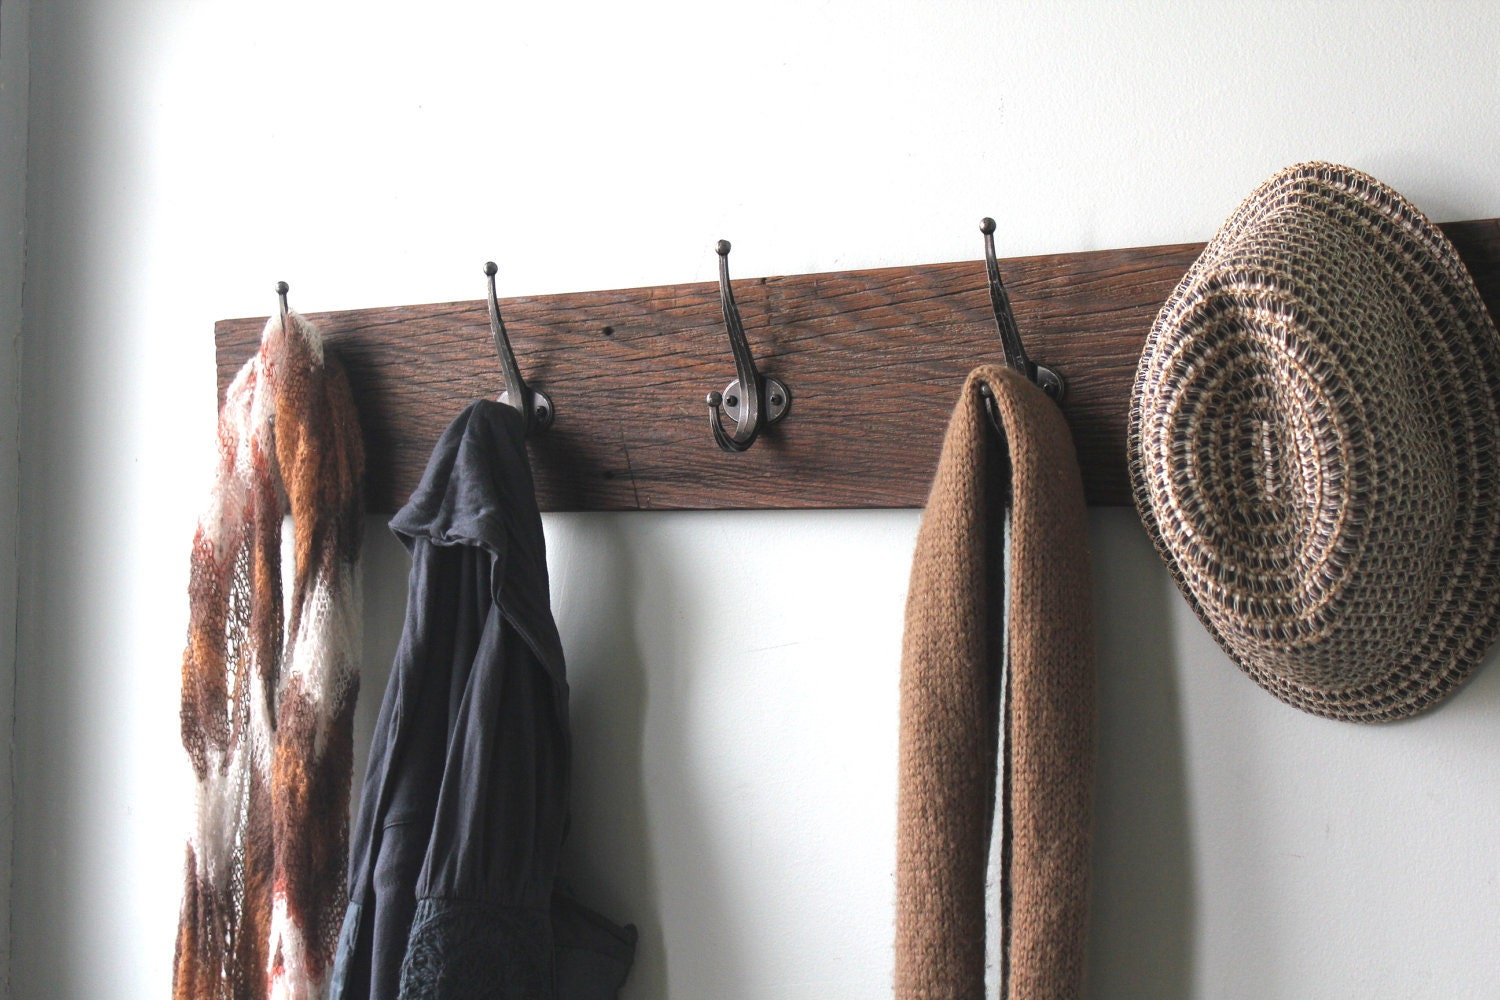 Reclaimed Barn Wood Coat Rack By Bluebirdheaven On Etsy. Full resolution‎  snapshot, nominally Width 1500 Height 1000 pixels, snapshot with #855D46.